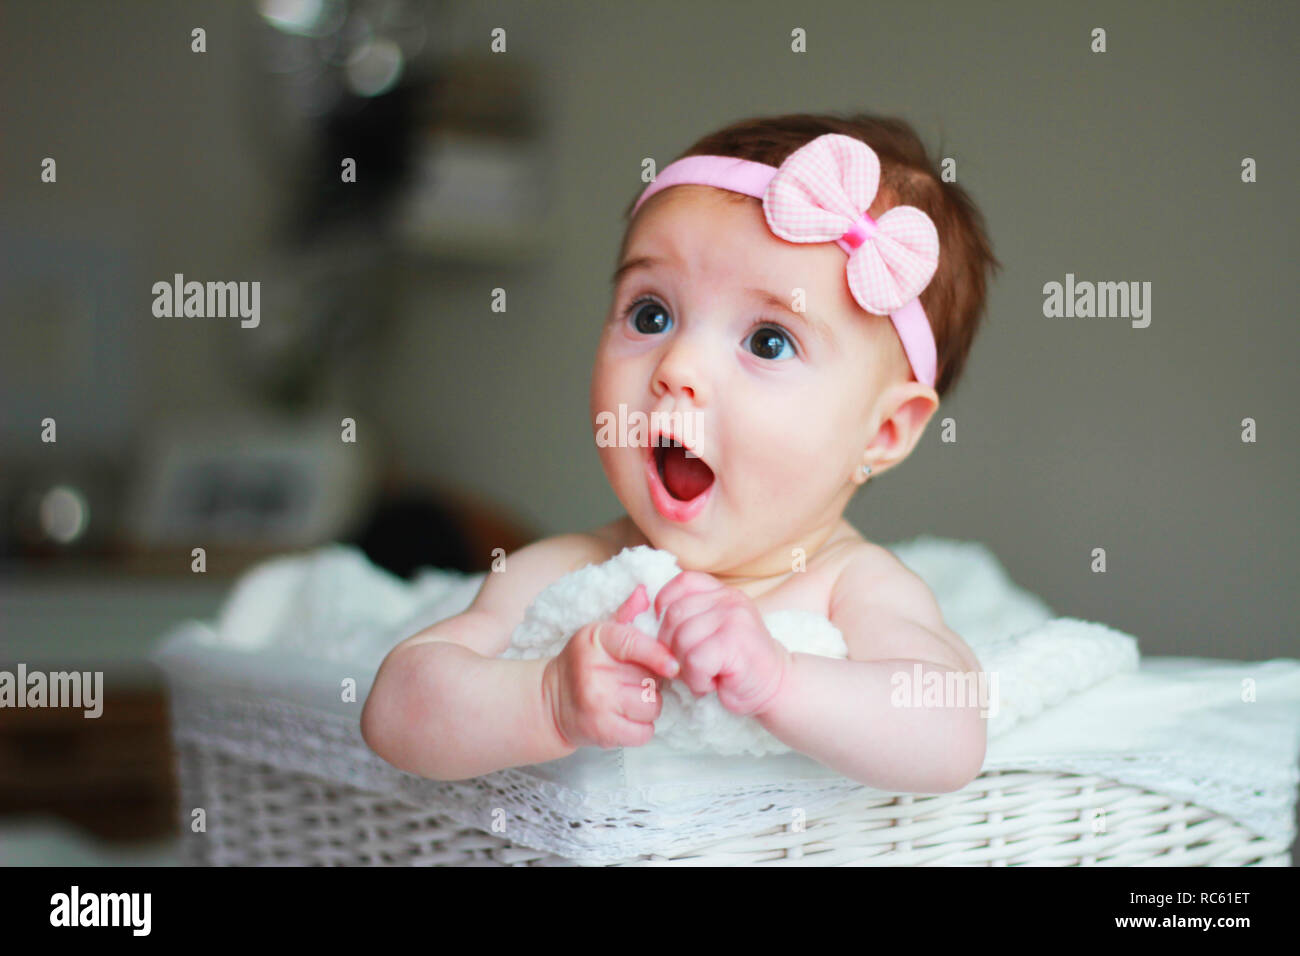 Cute Baby Girl With A Bow On Her Hair With Amazement Face